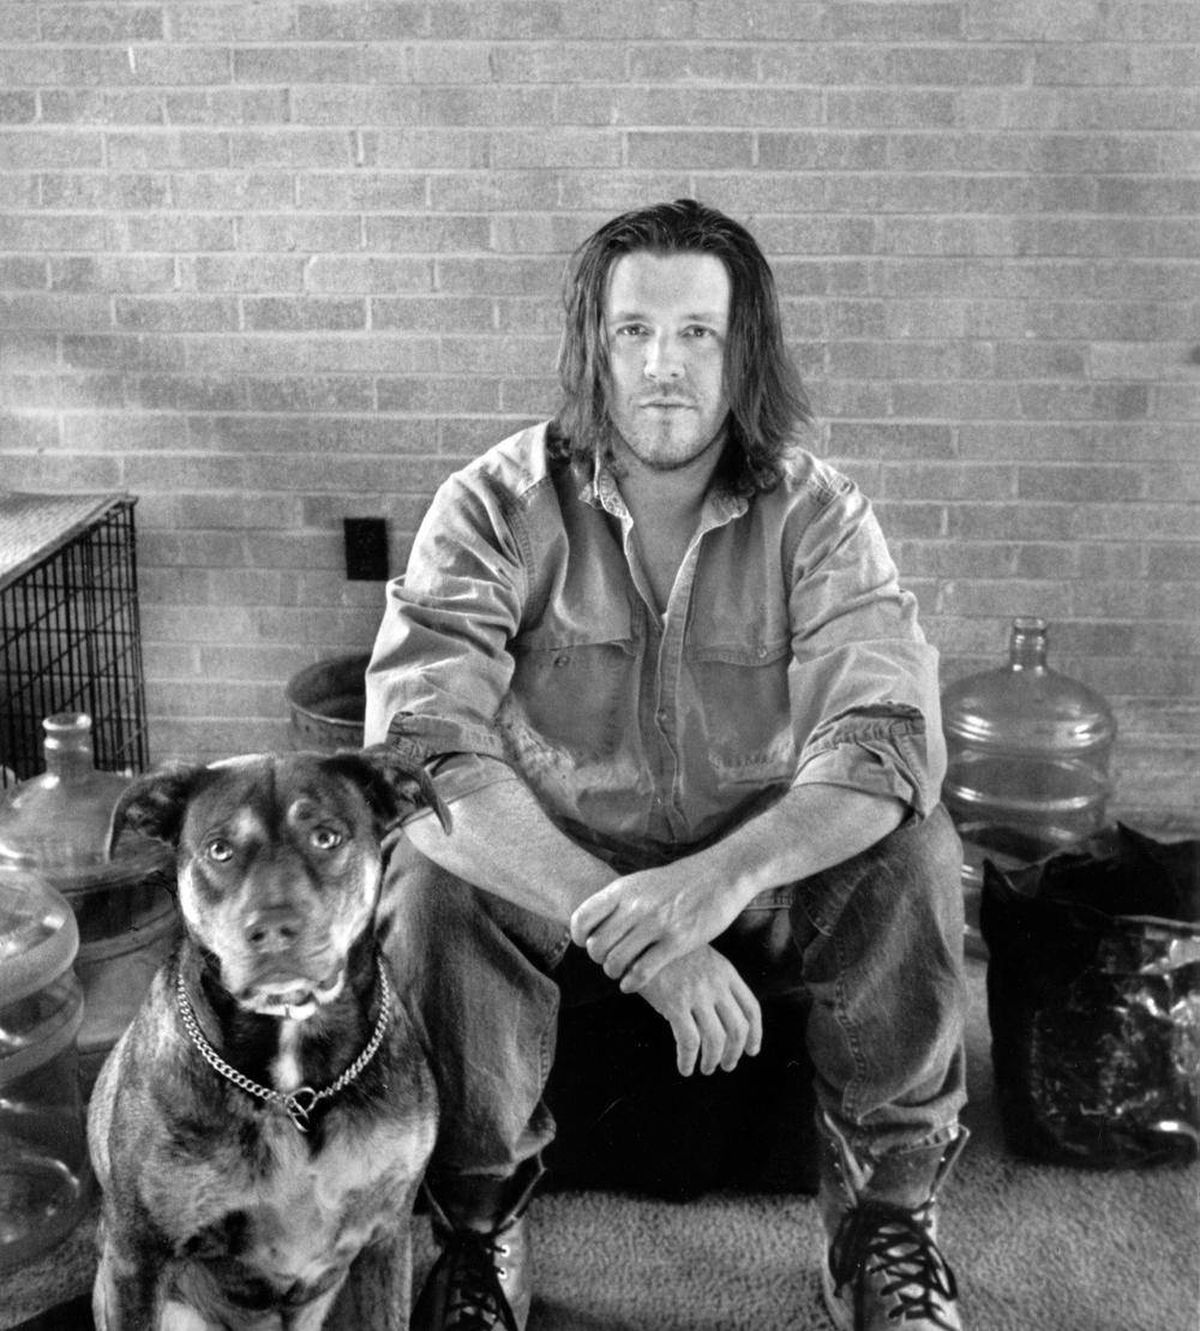 david foster wallace biography David foster wallace: david foster wallace, american novelist, short-story writer, and essayist whose dense works provide a dark, often satirical analysis of american.